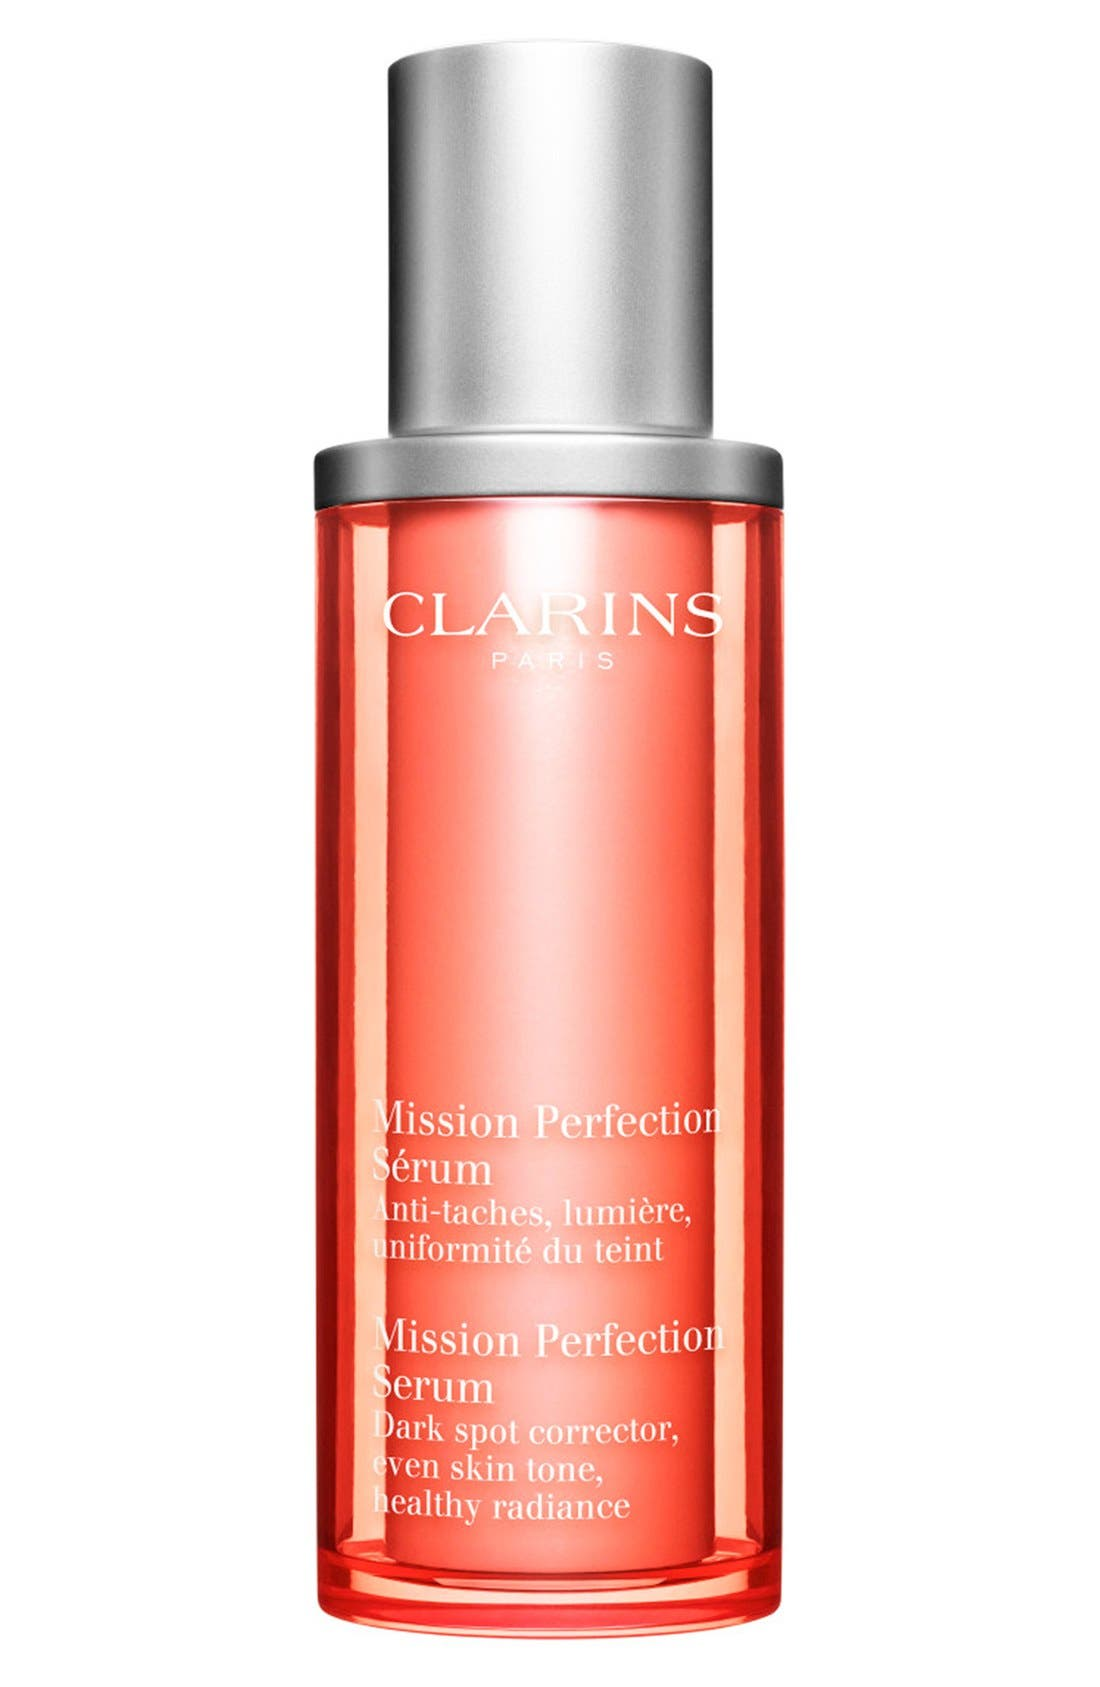 Clarins 'Mission Perfection' Serum (Large Size)